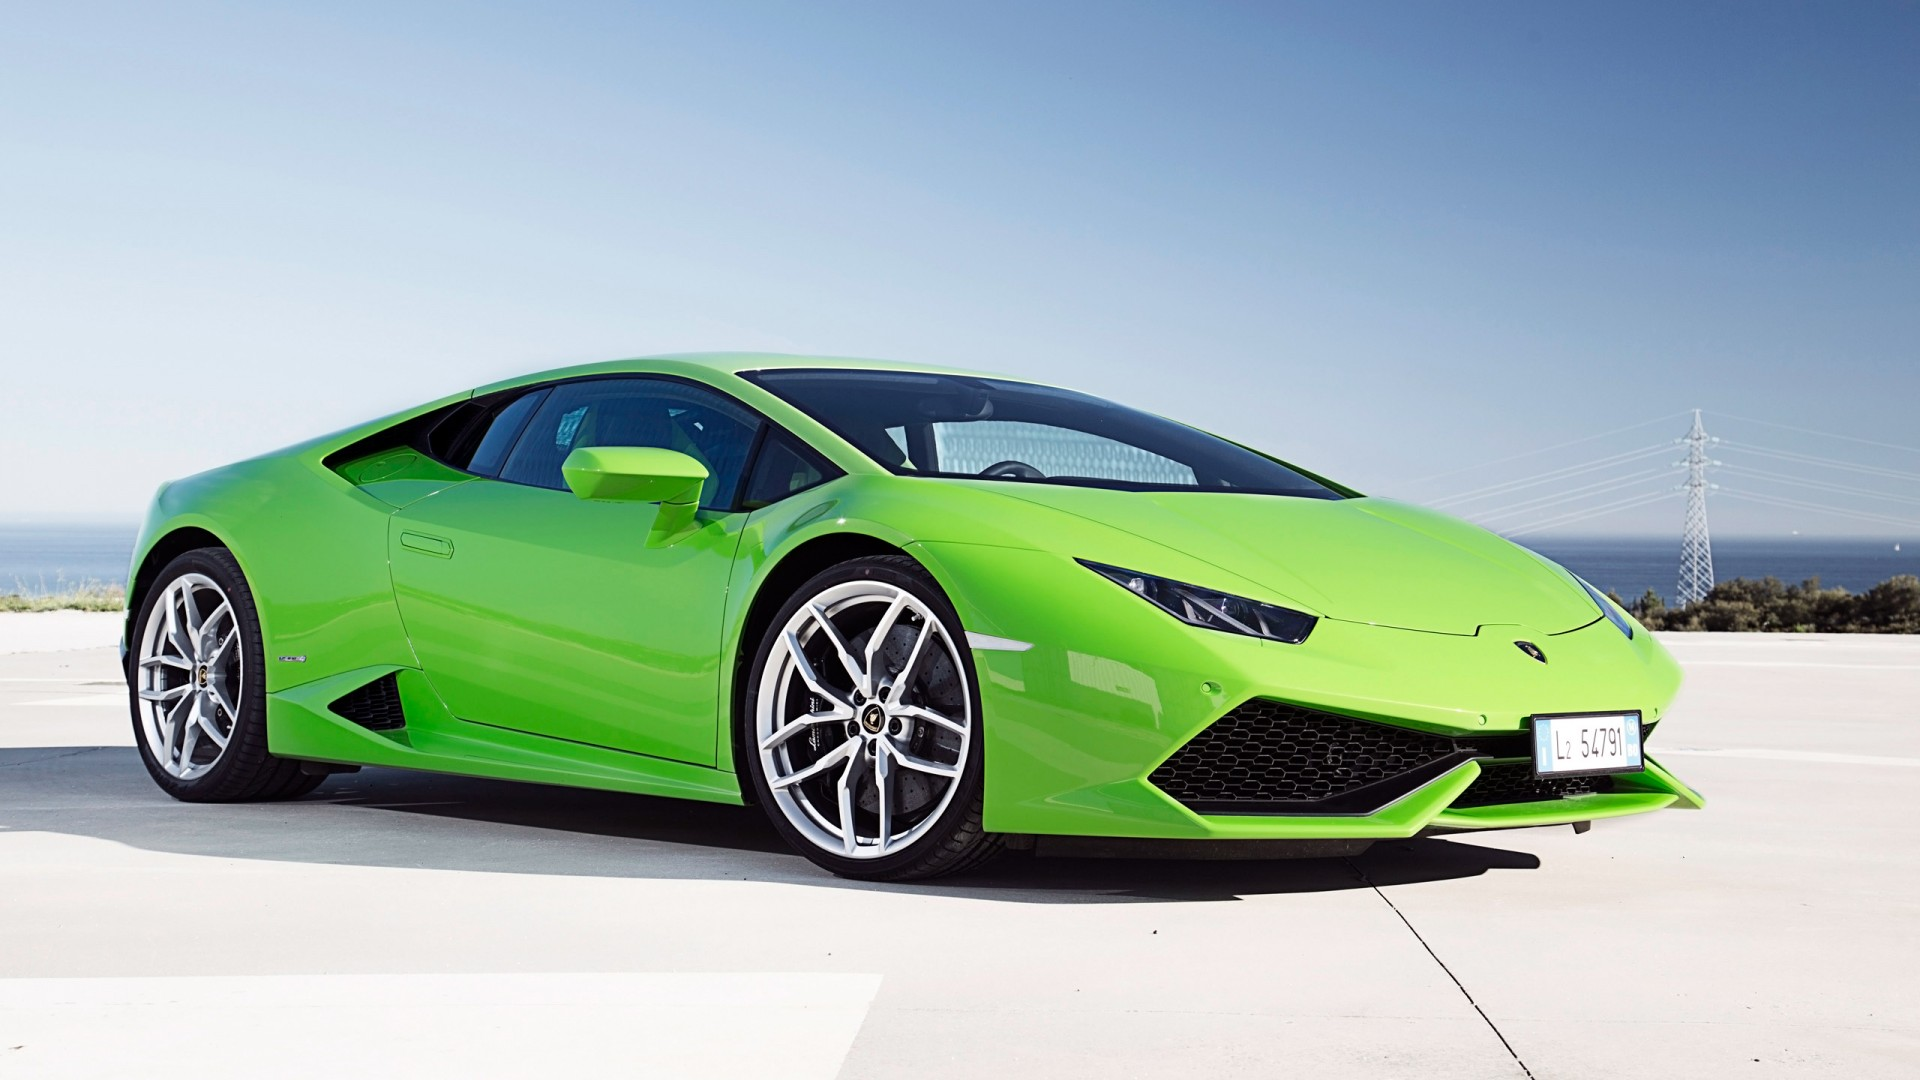 2014 Lamborghini Huracan LP610 4 Green Wallpaper | HD Car ...